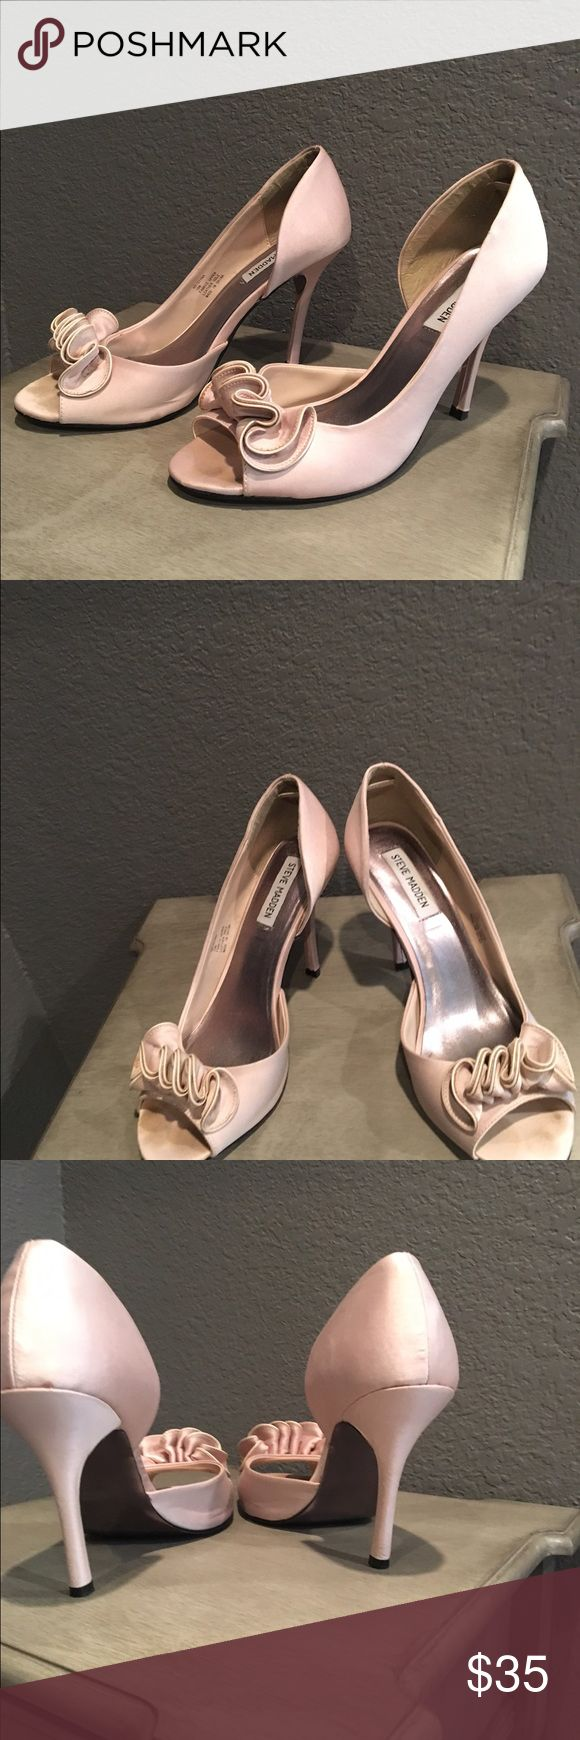 Satin shoes Elegant satin Champaign color shoes, by Steve Madden ! Excellent condition , super comfortable! Steve Madden Shoes Heels